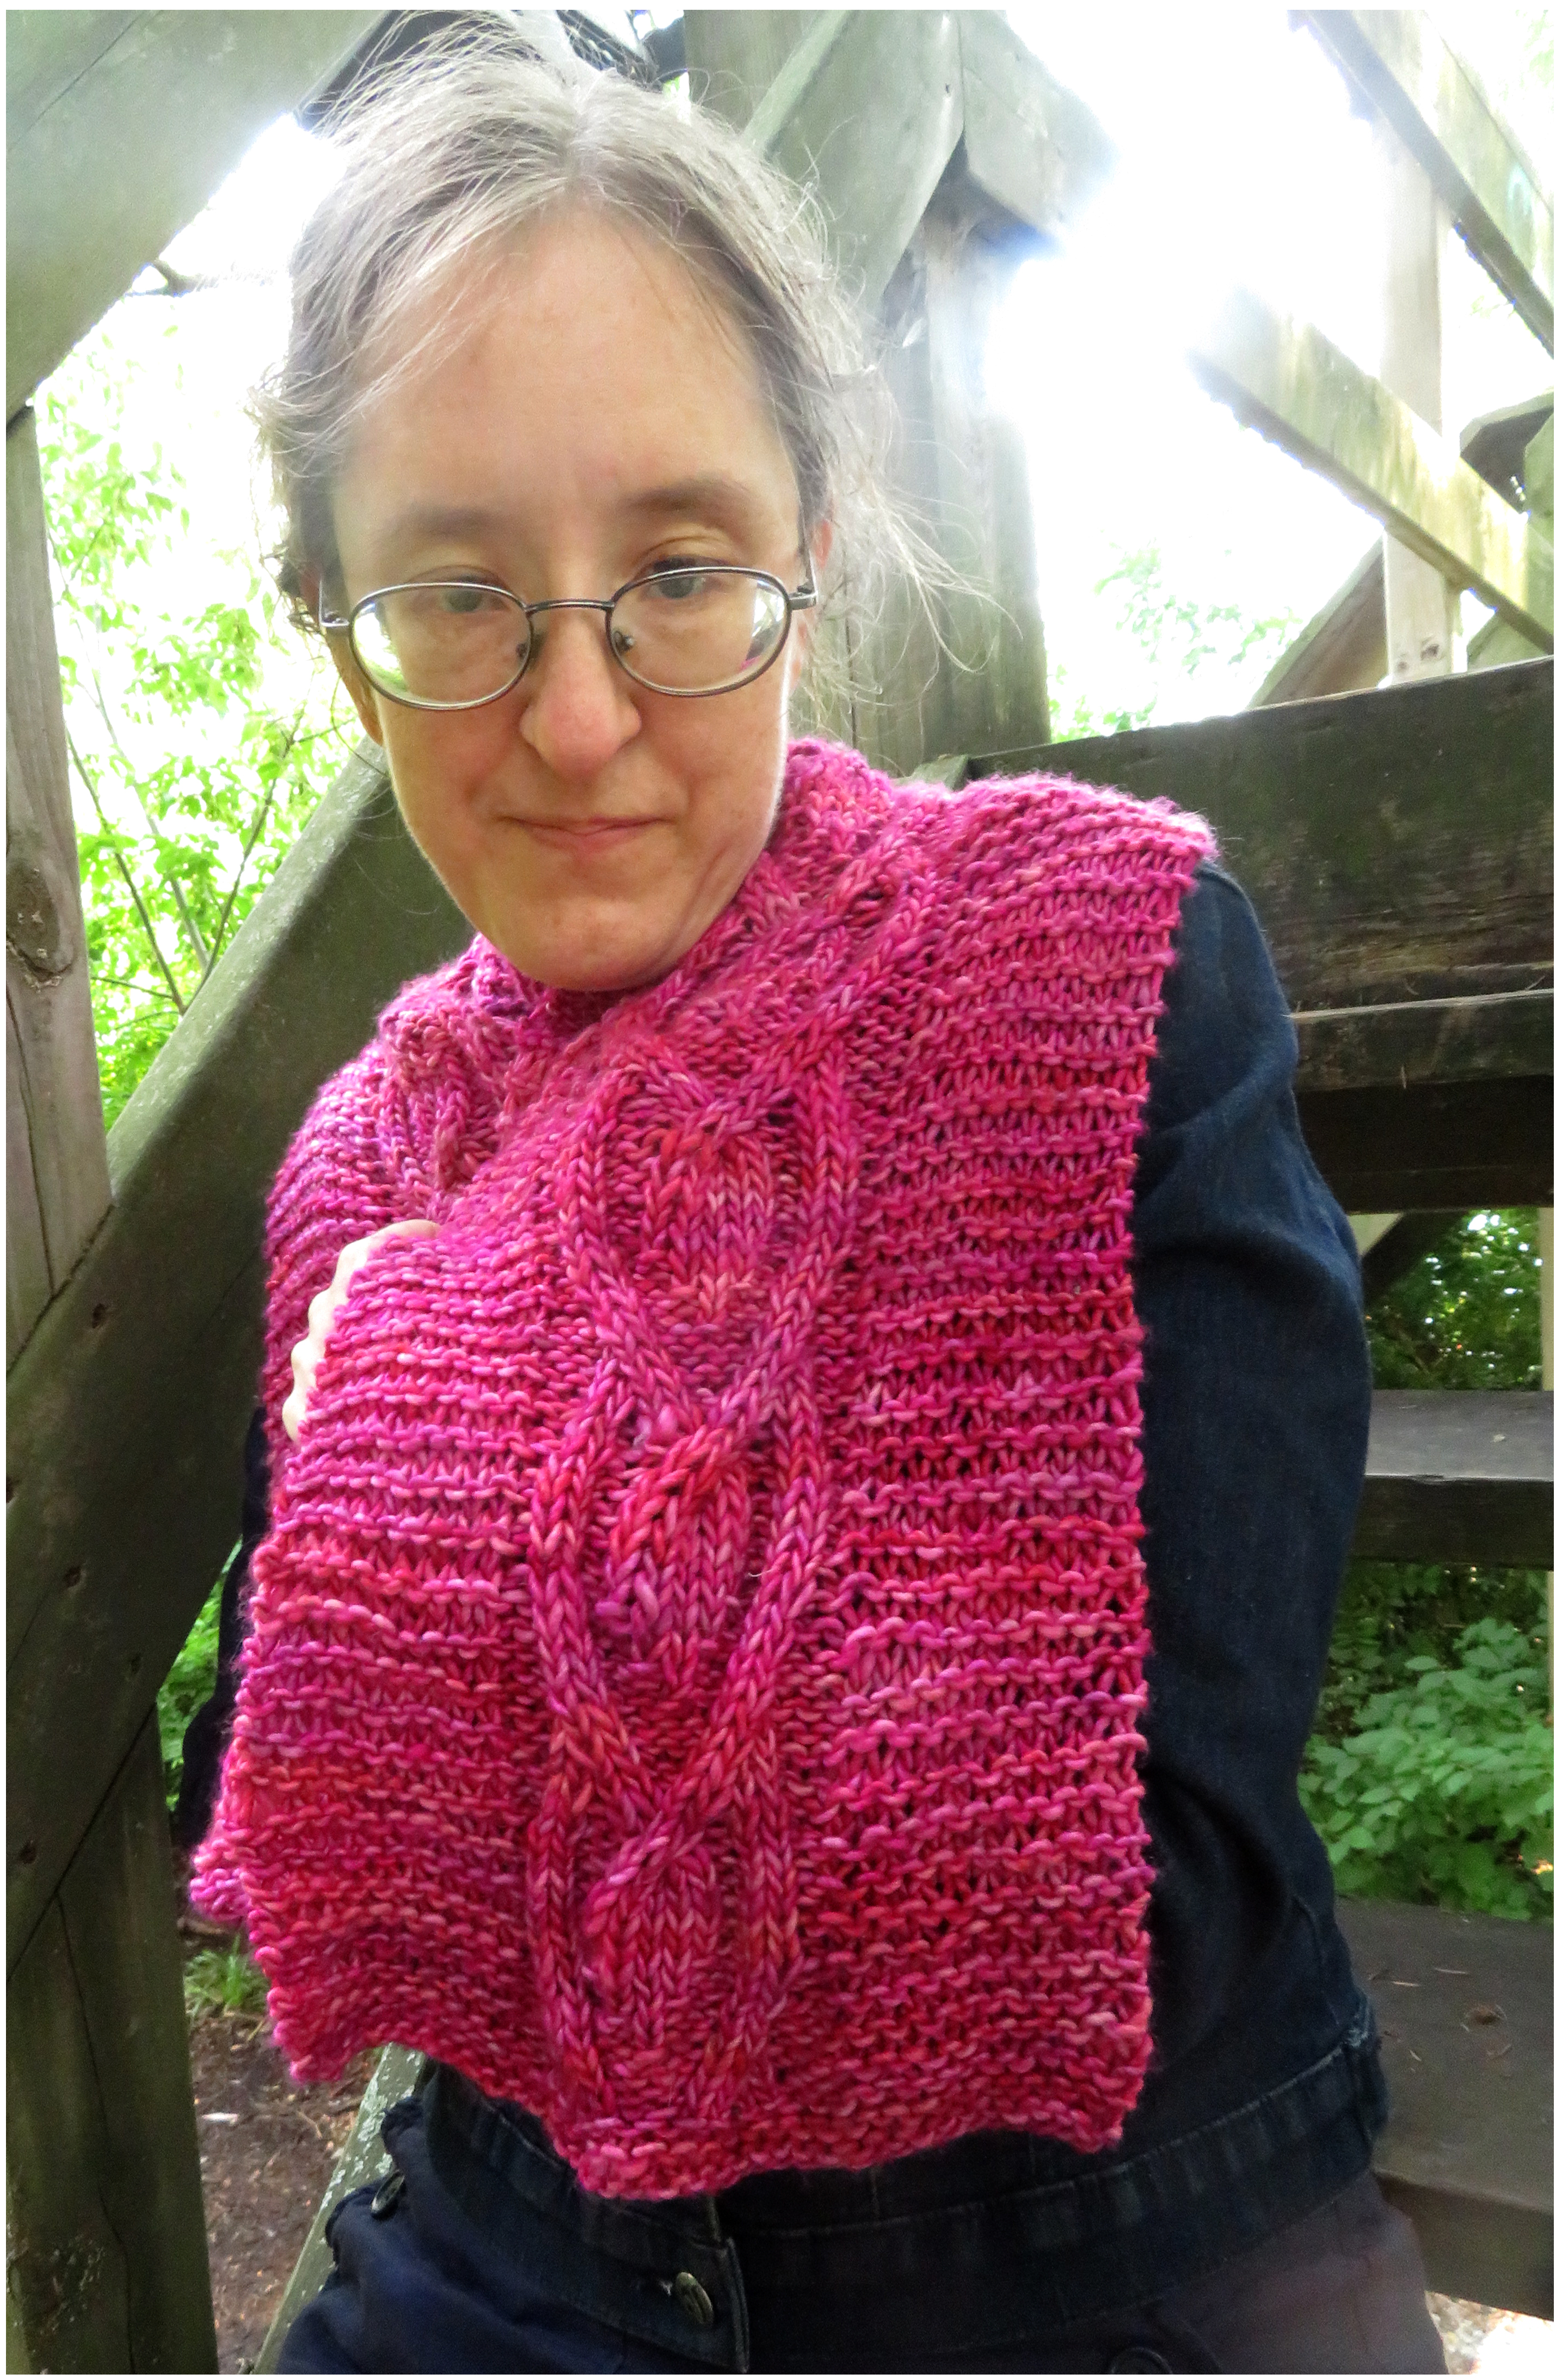 A woman wearing a deep pink cabled scarf knit in bulky  weight yarn.  The scarf is spread over one shoulder, and is done mostly in garter stitch with a large central cable.